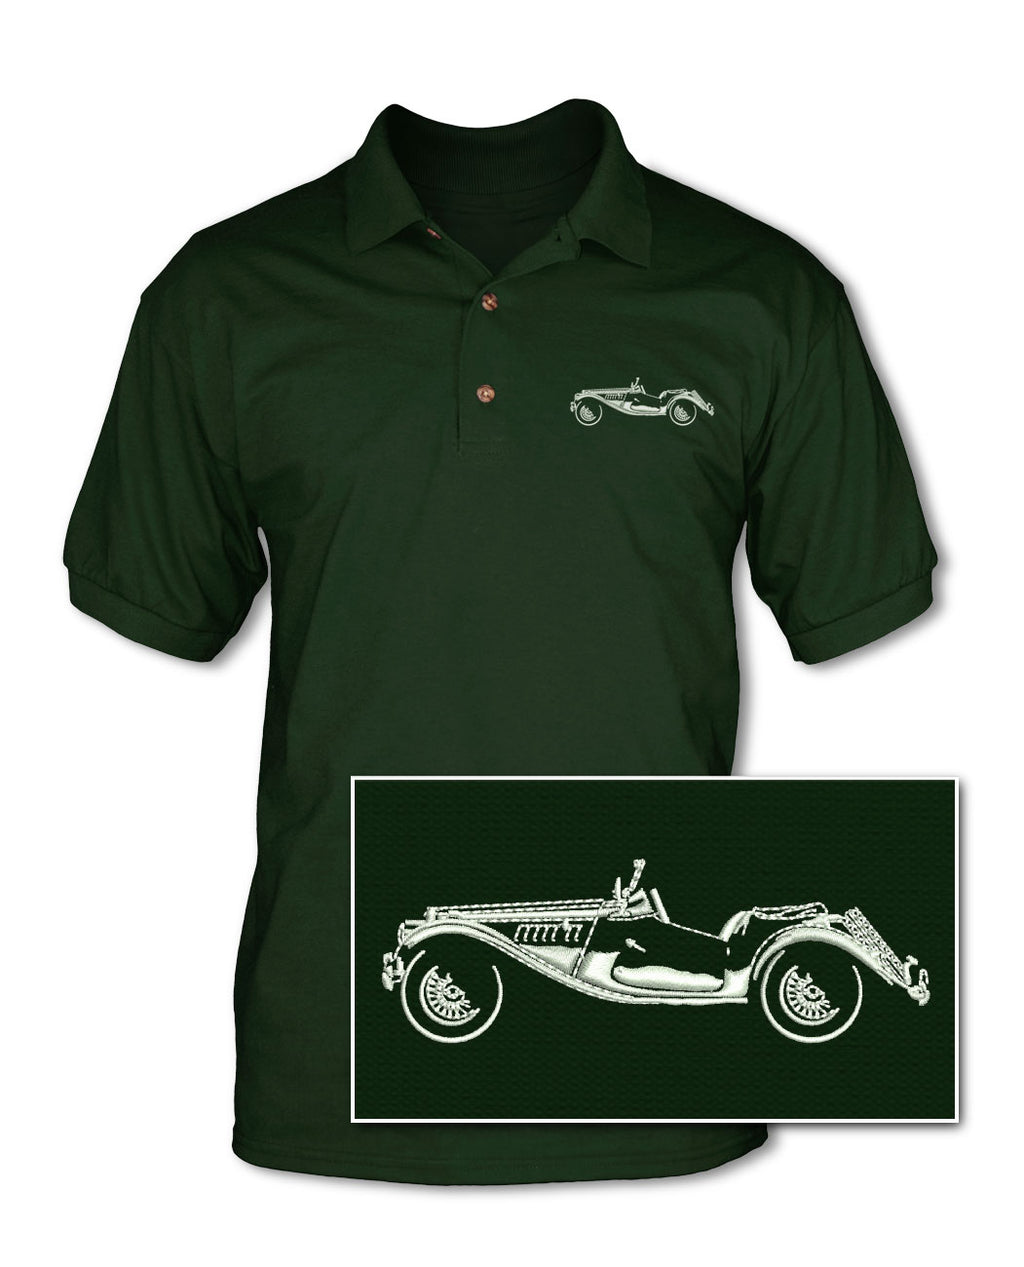 MG TF Roadster Adult Pique Polo Shirt - Side View